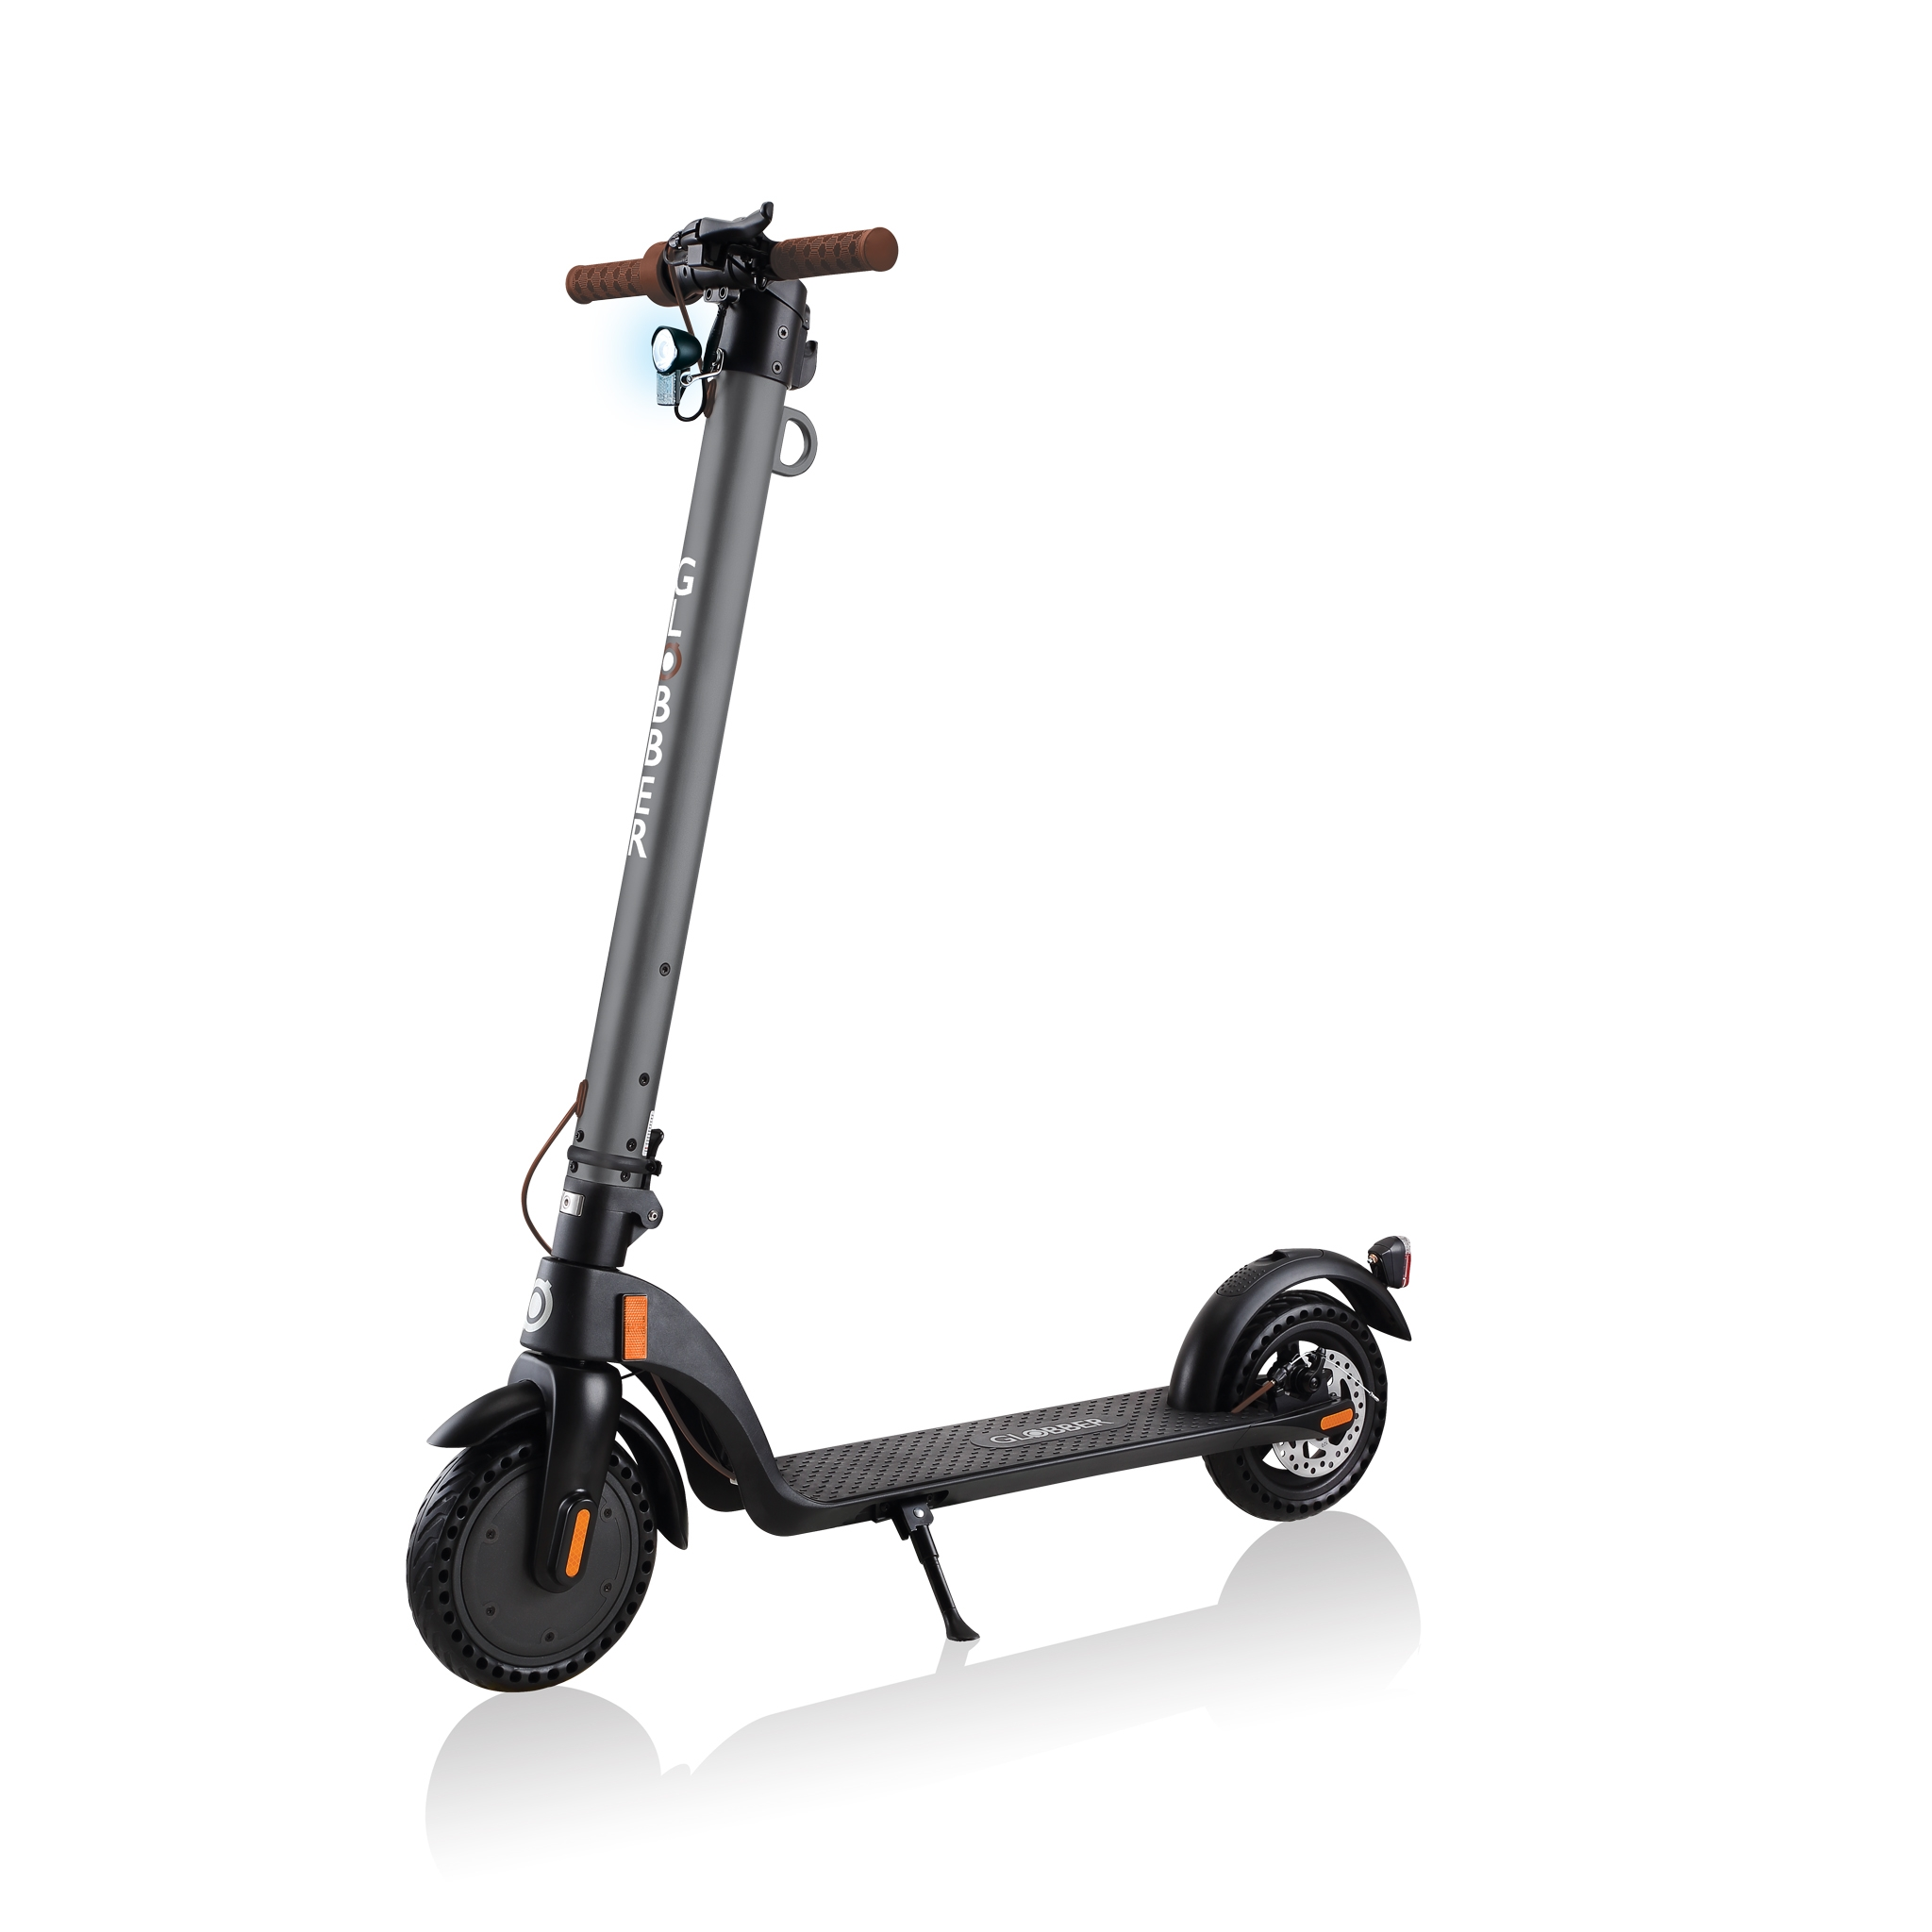 Globber-ONE-K-E-MOTION-23-electric-scooter-for-teens-and-adults-aged-14-and-above 0